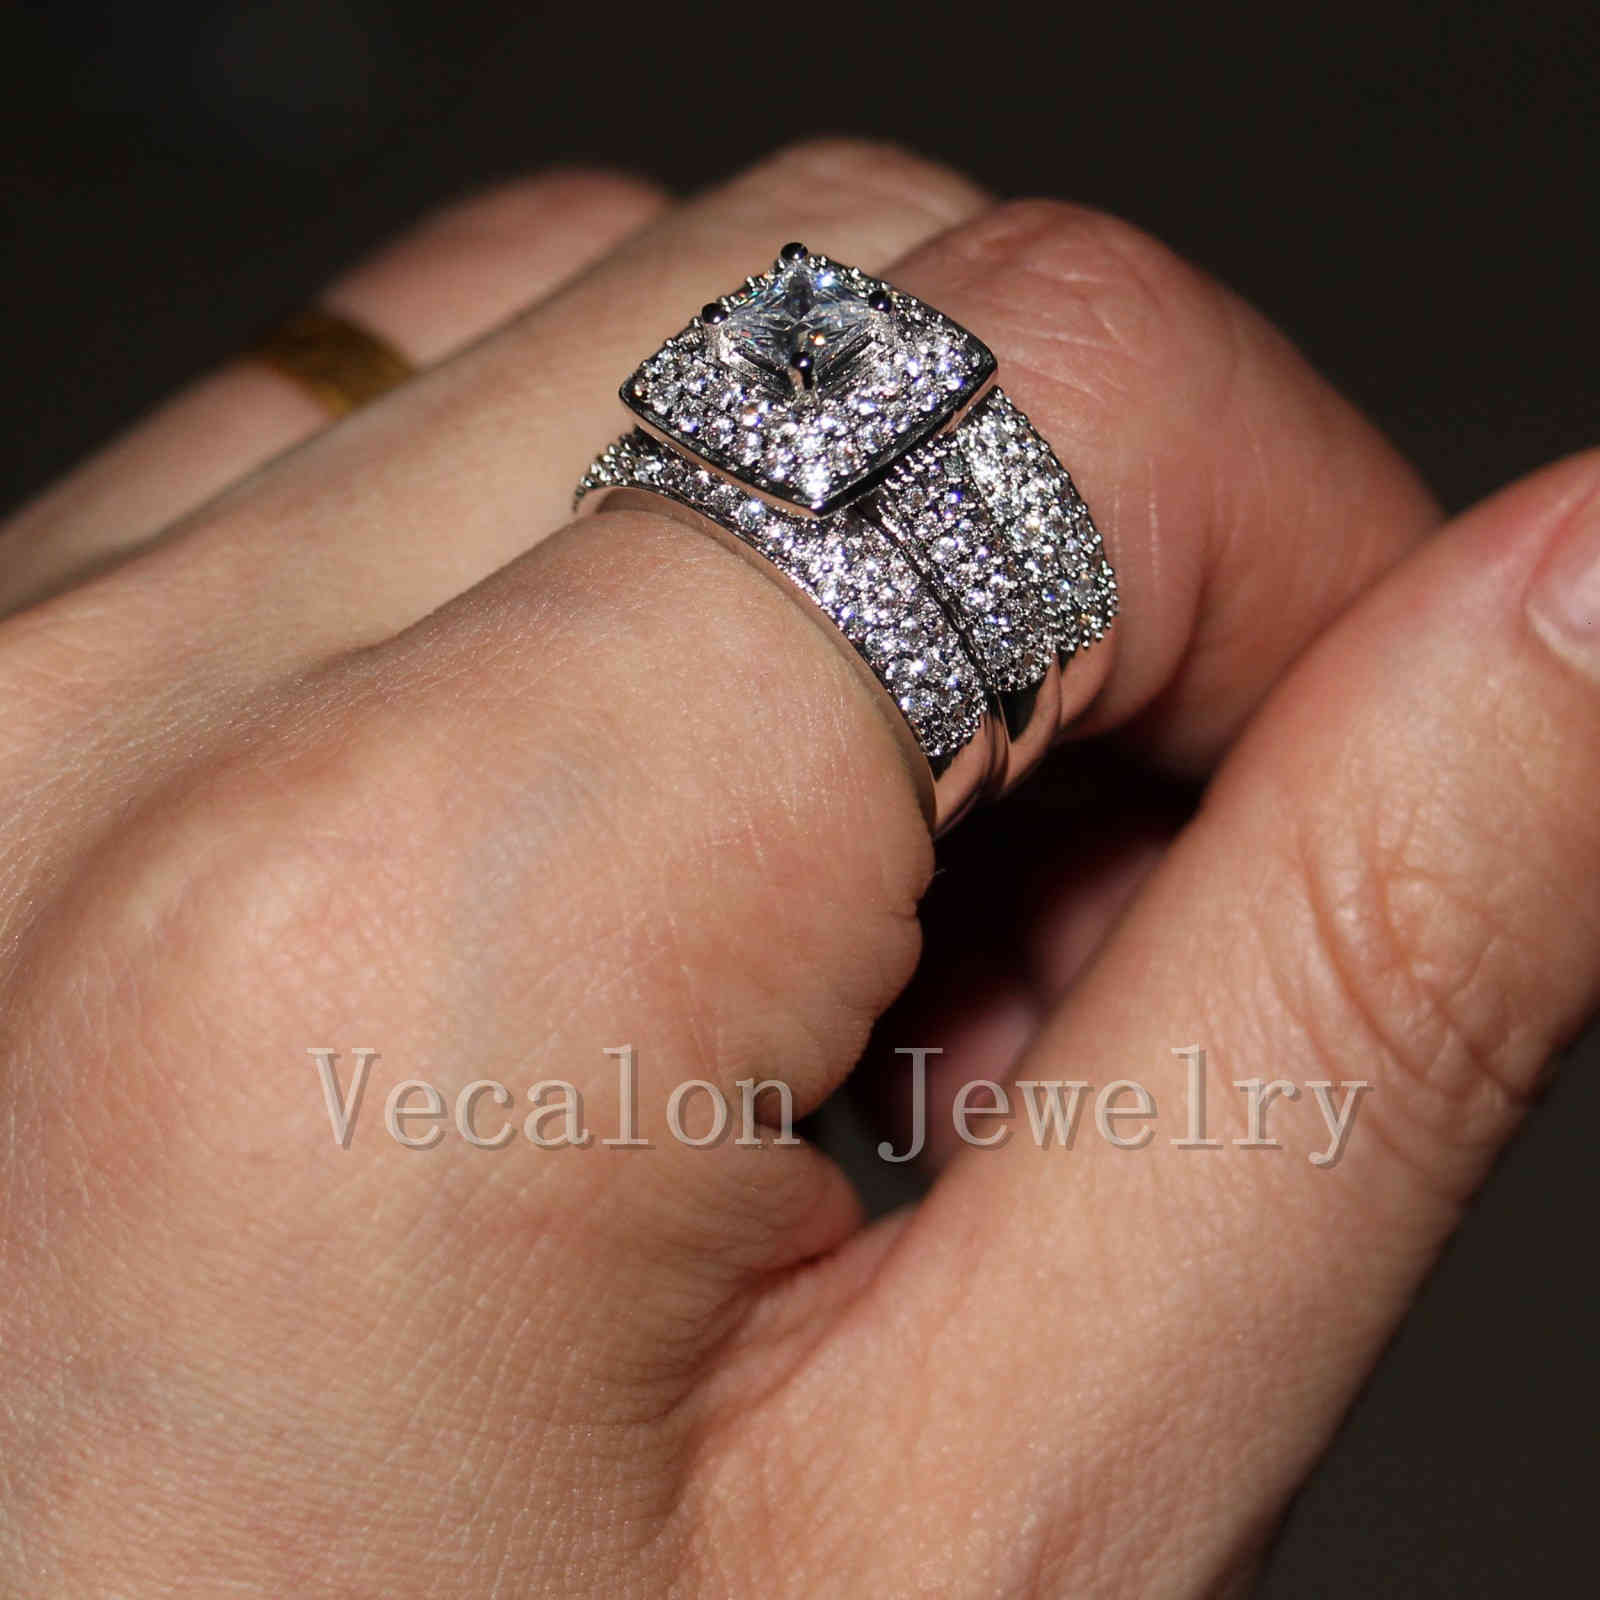 Vecalon Topaz Simulated diamond cz 14KT White Gold Filled 3-in-1 Engagement Wedding Band Ring Set for Women Sz 5-11